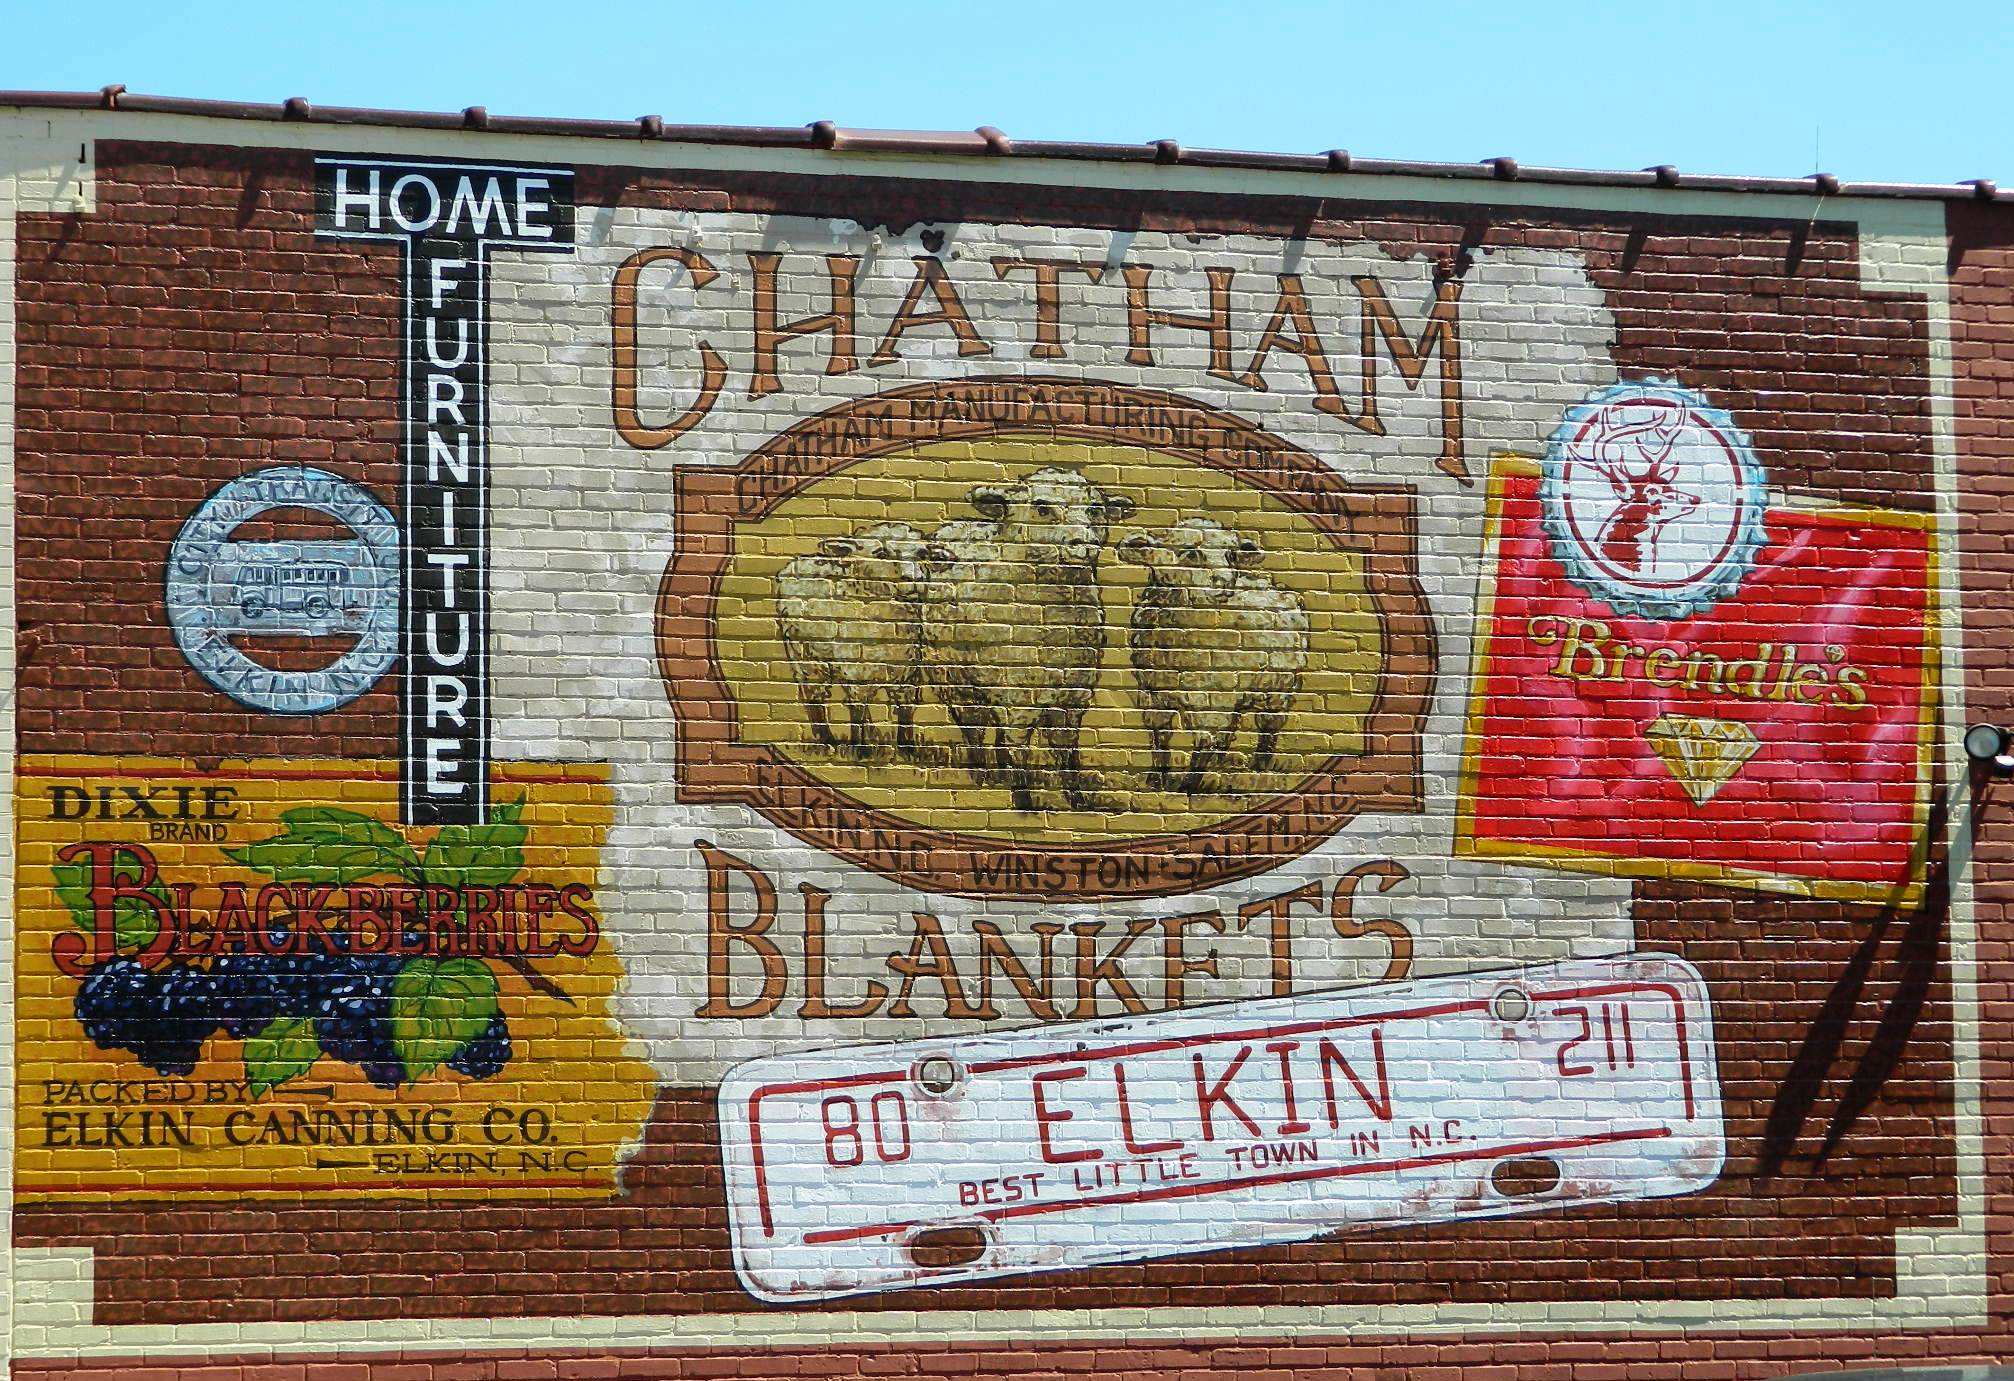 One of the many murals in downtown Elkin. This showcases businesses that were famous in Elkin from decades past.